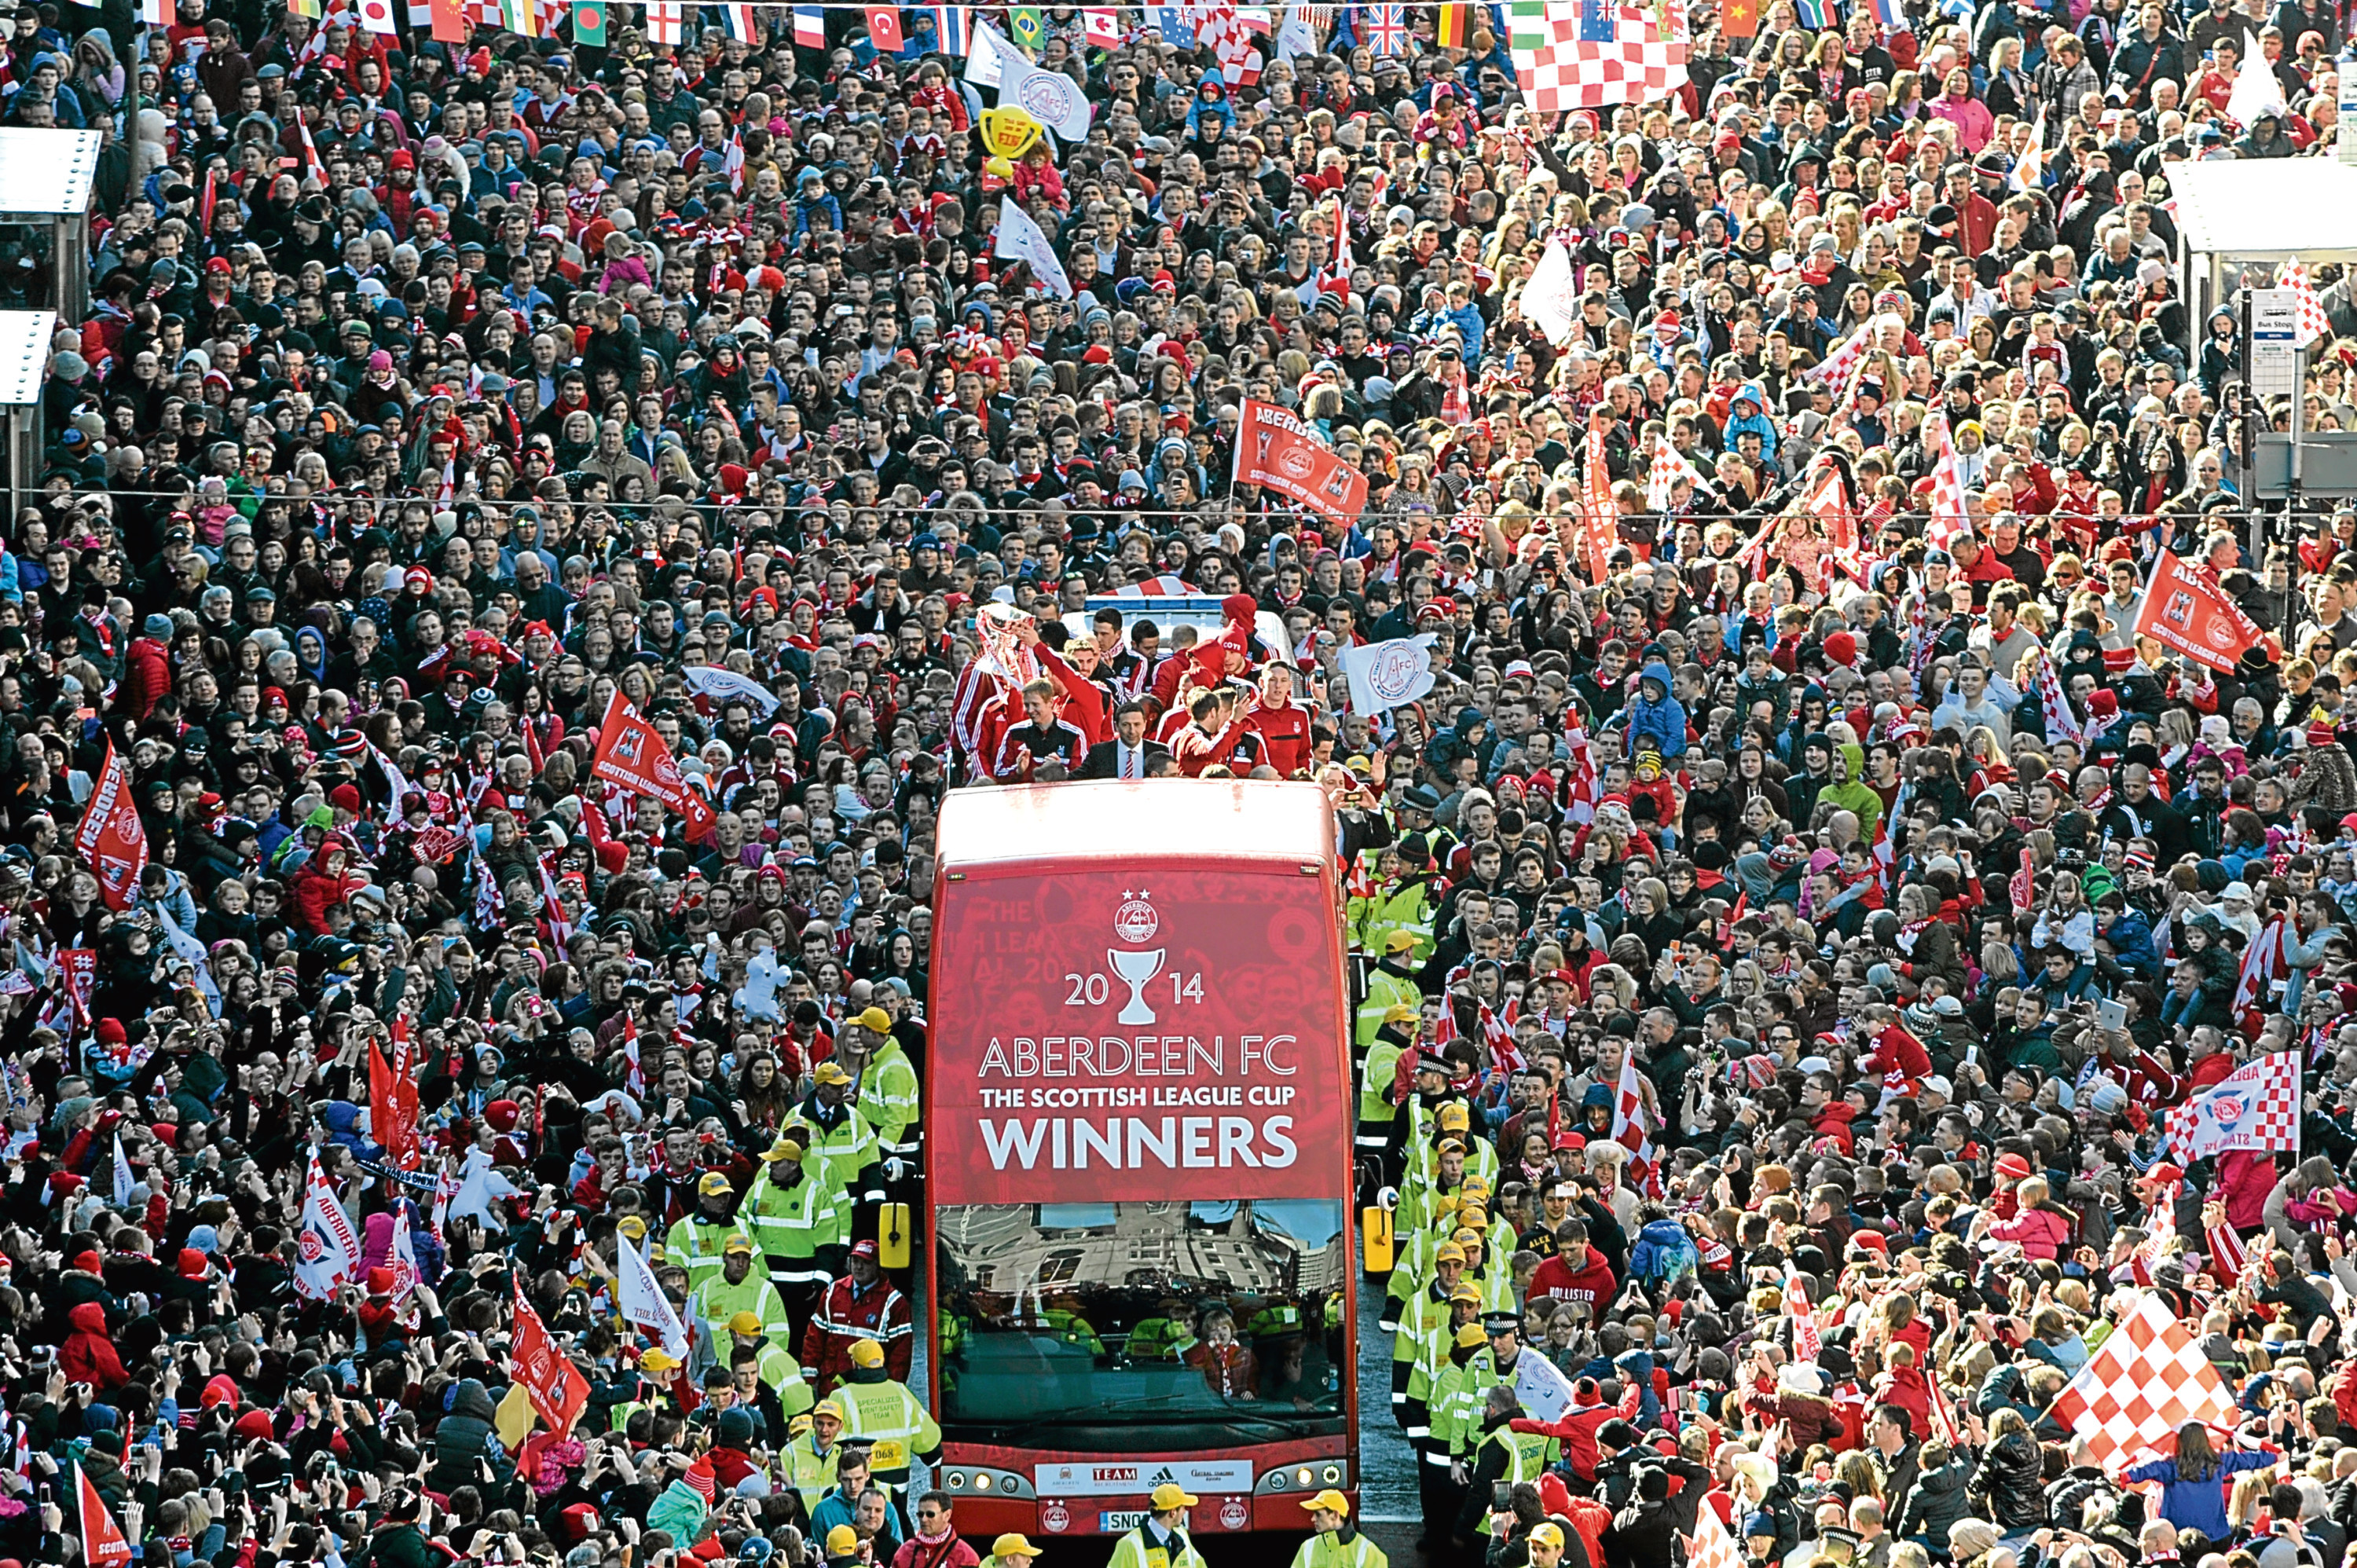 Aberdeen FC parade the Scottish League Cup trophy through the city centre. Picture from the Citadel tower.    Picture by KENNY ELRICK       23/03/2014   .